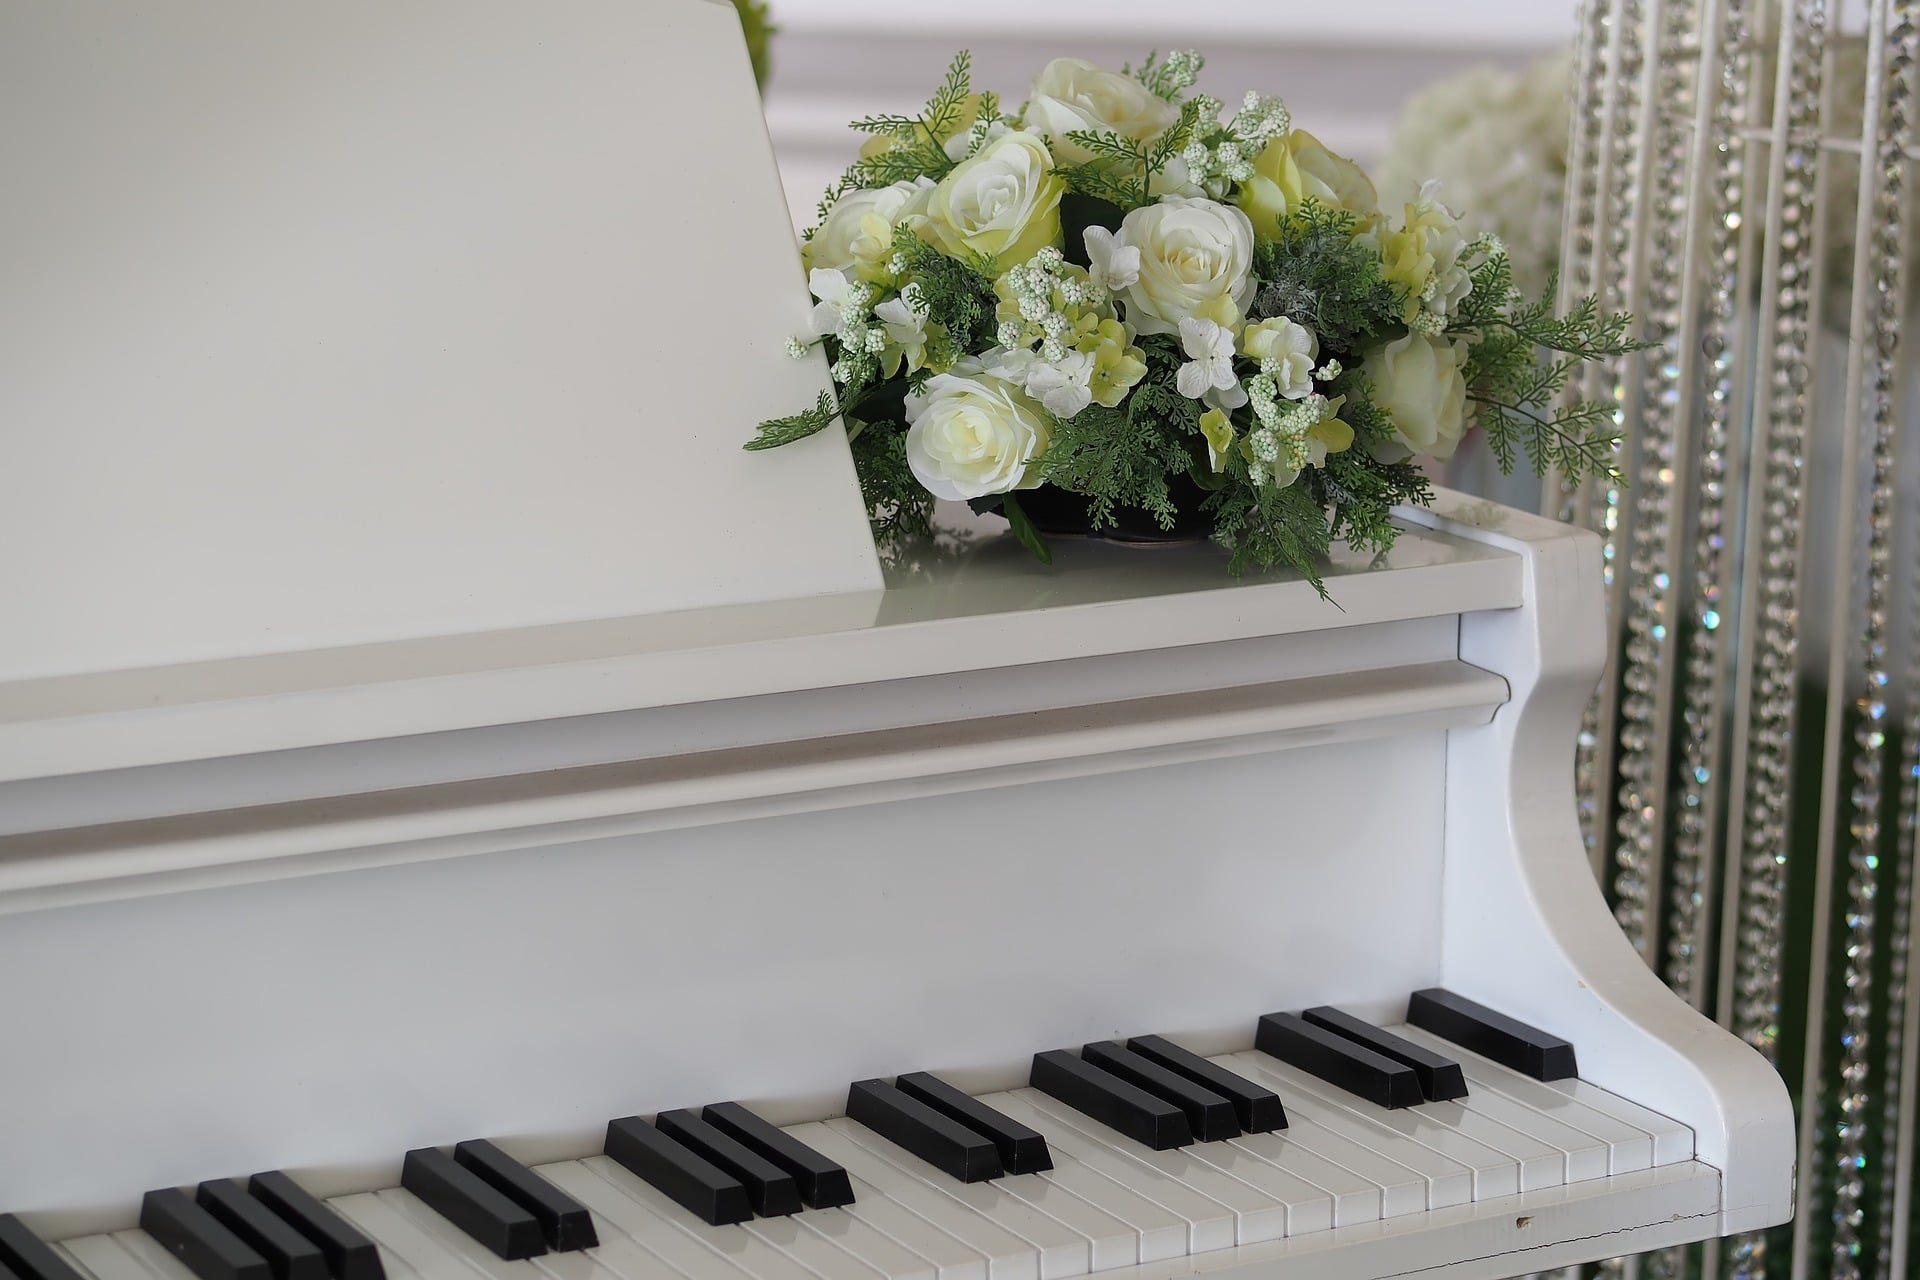 How to Take Care of Your Piano